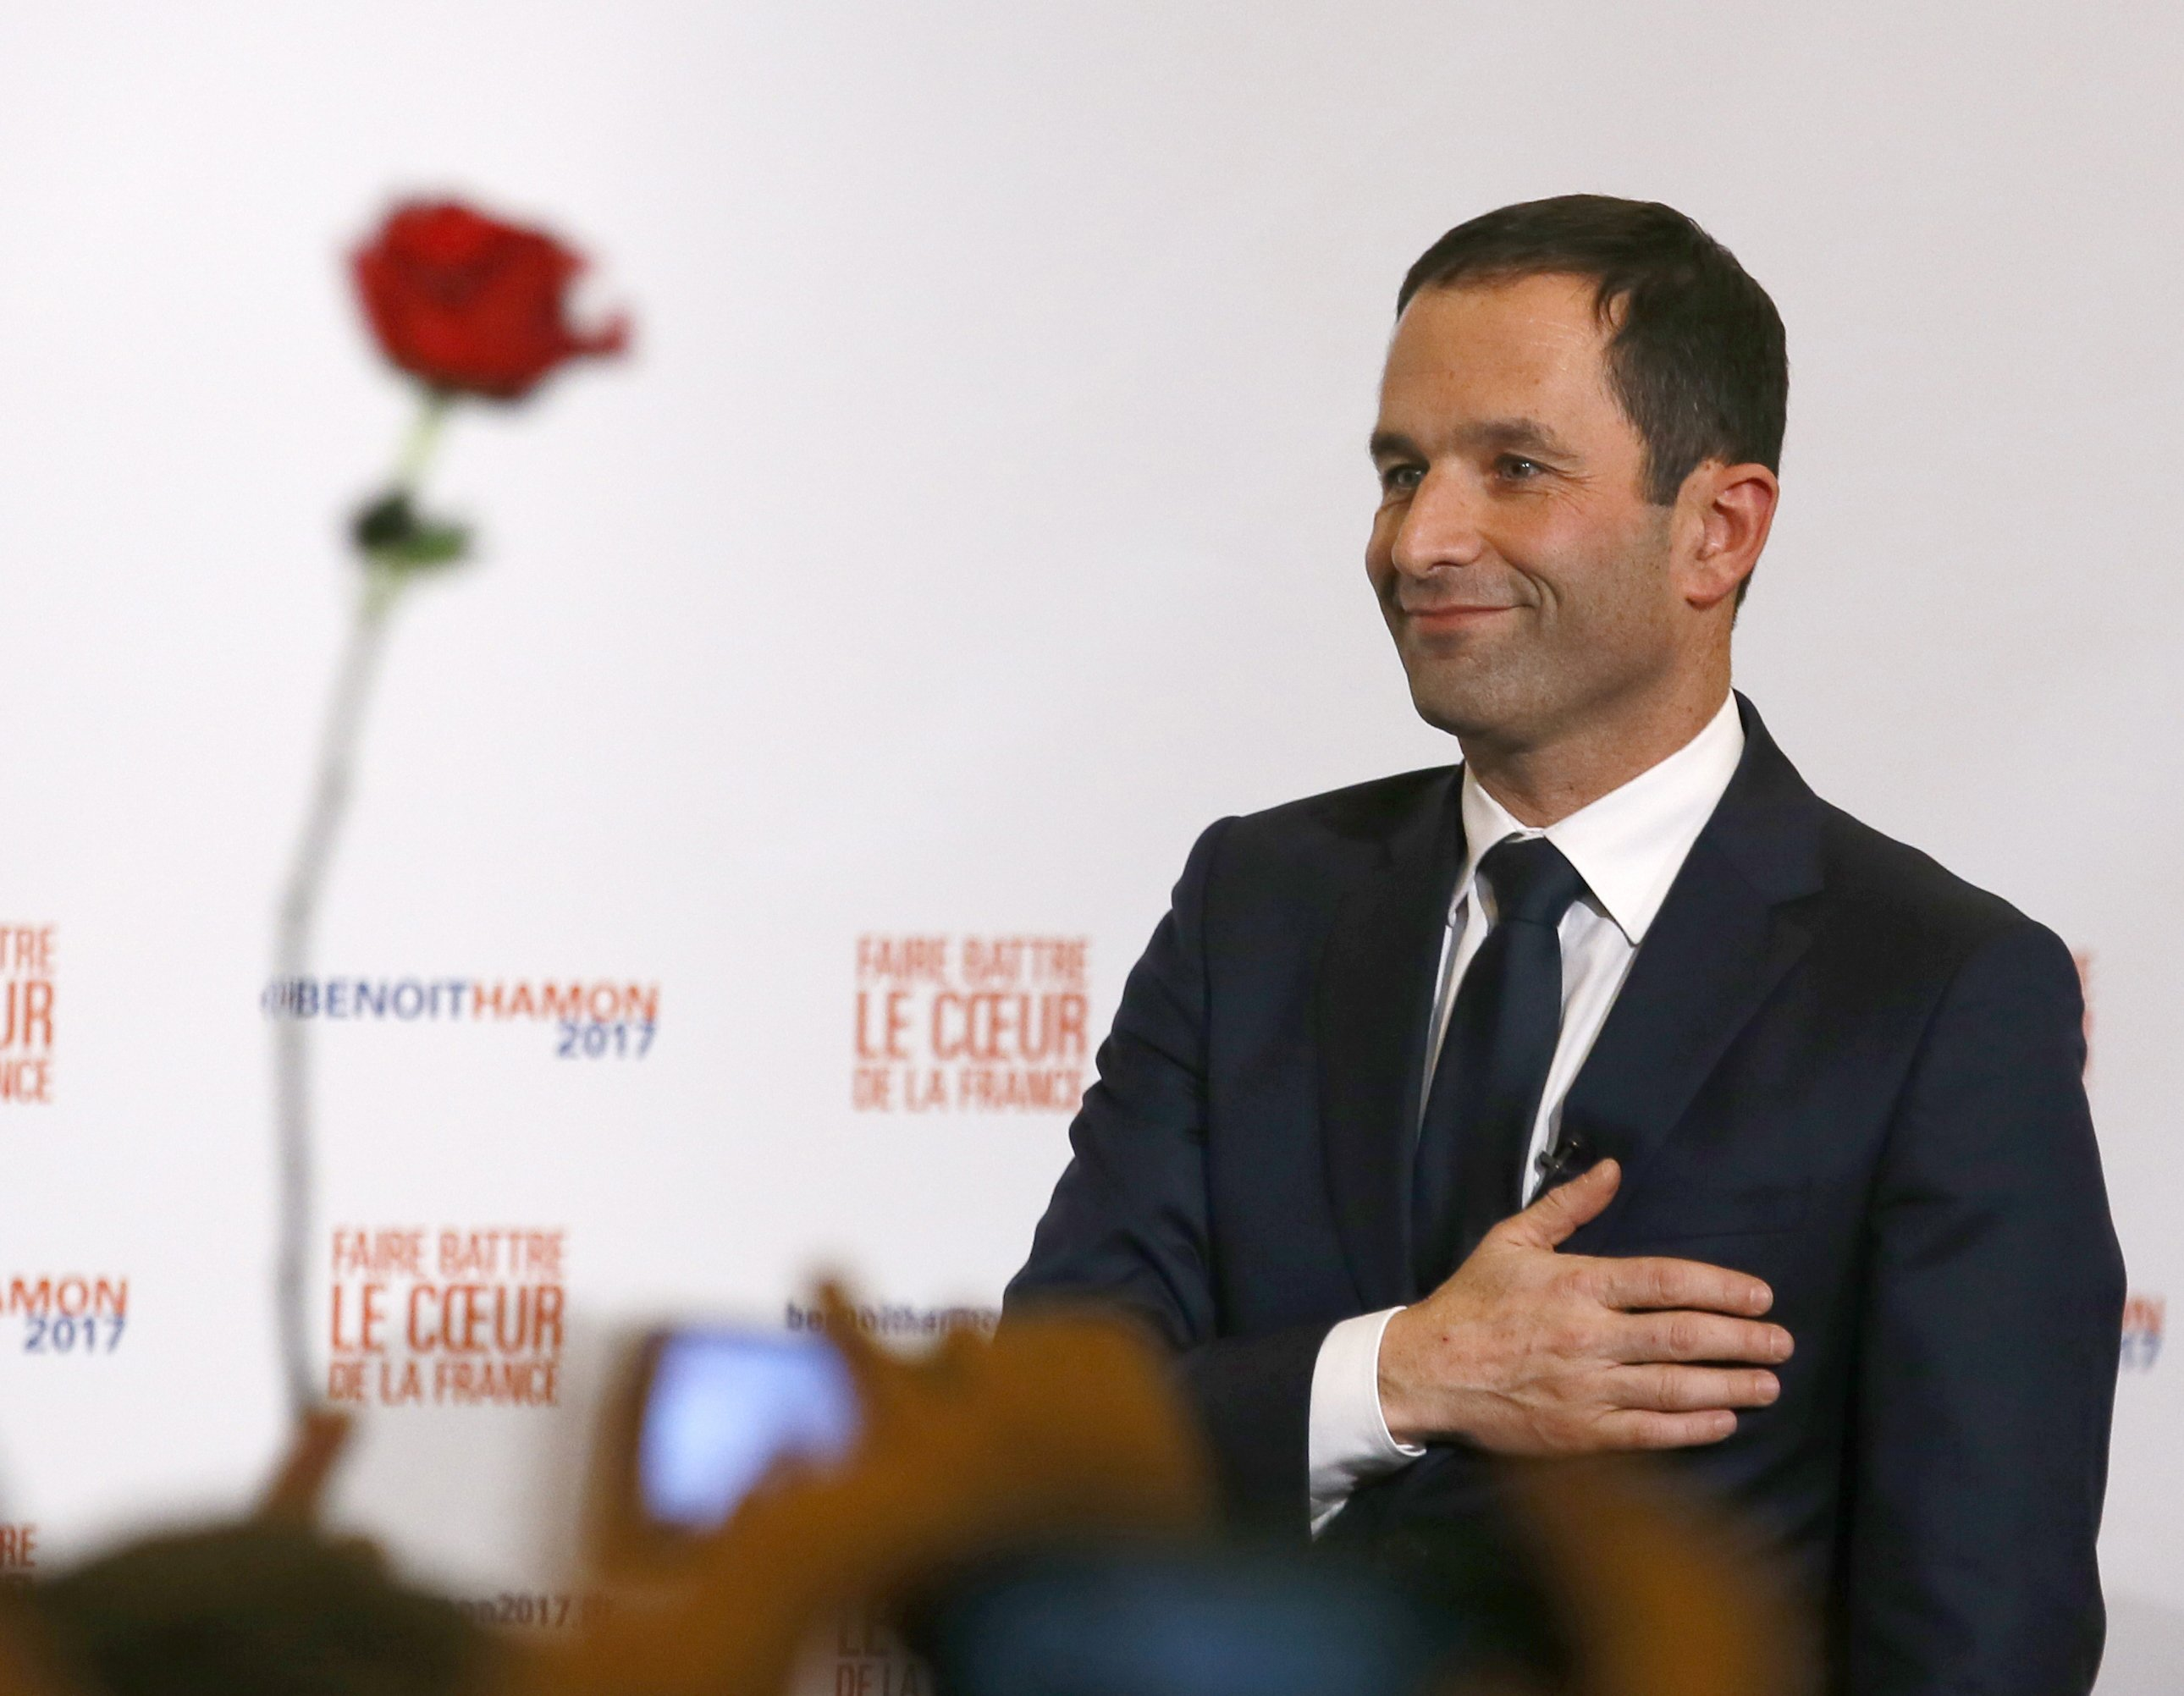 Hard work starts now for France's Socialist candidate